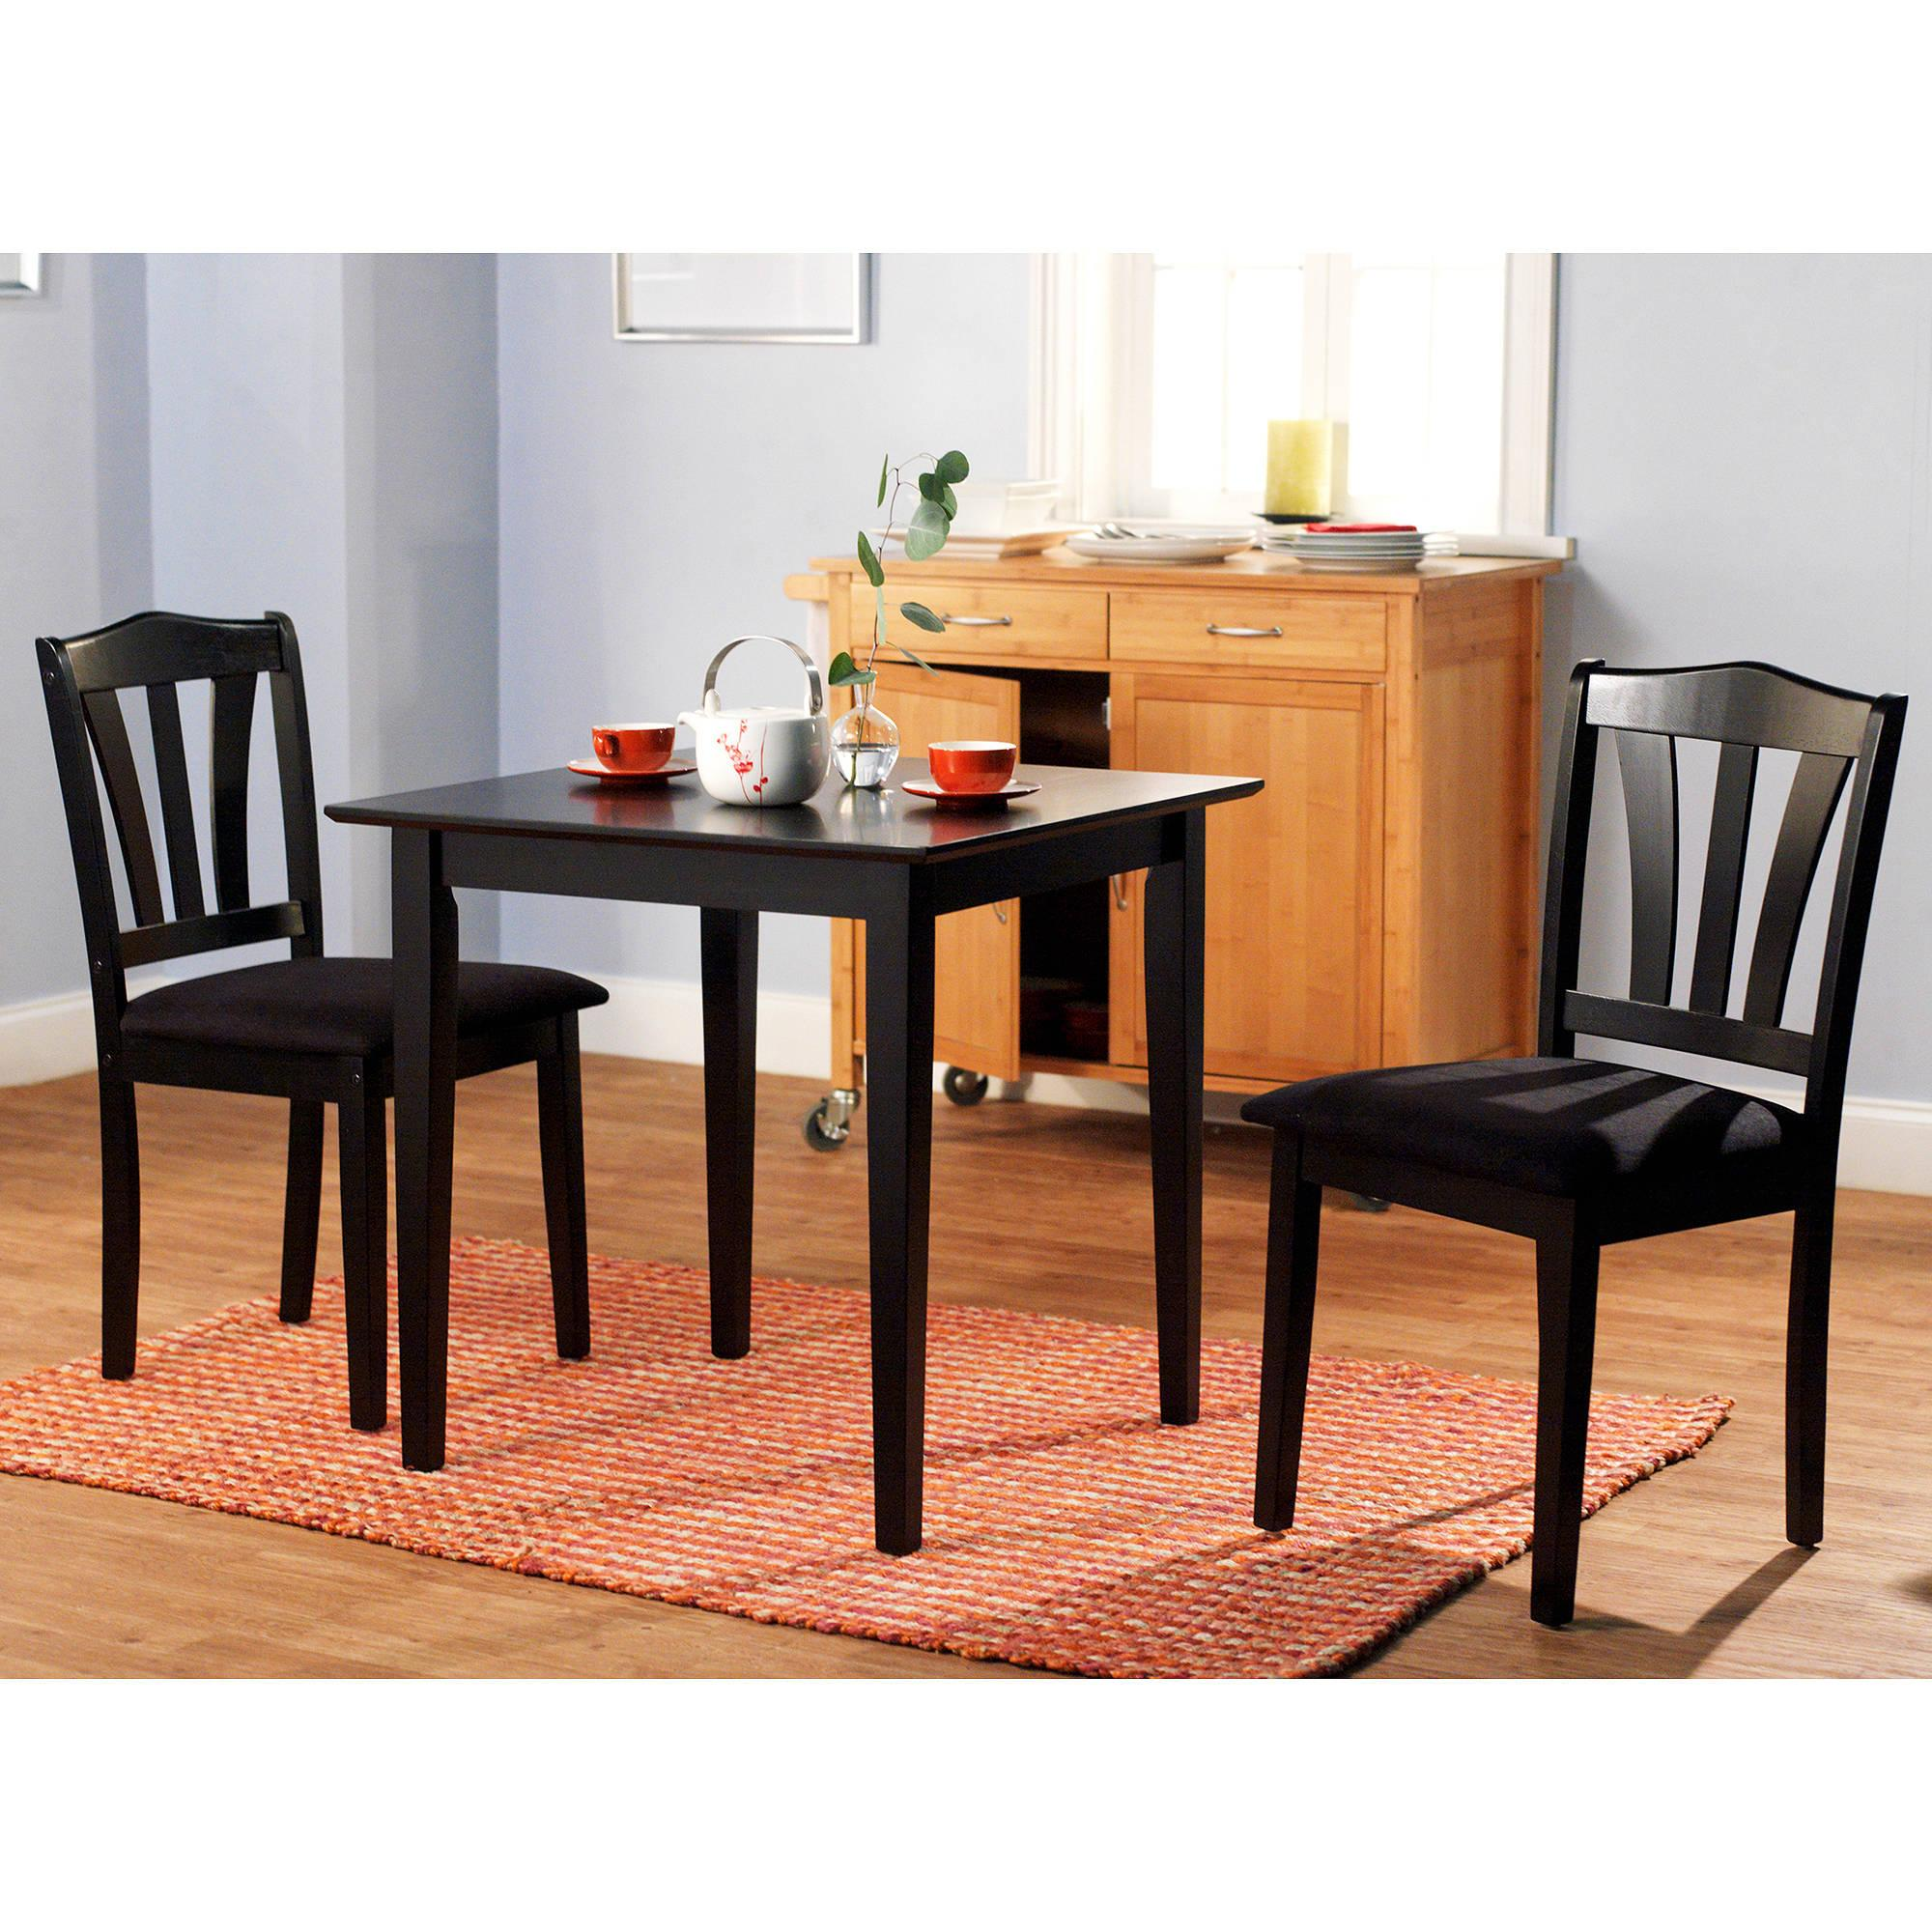 2 Chair Dining Table 3 Piece Dining Set Table 2 Chairs Kitchen Room Wood